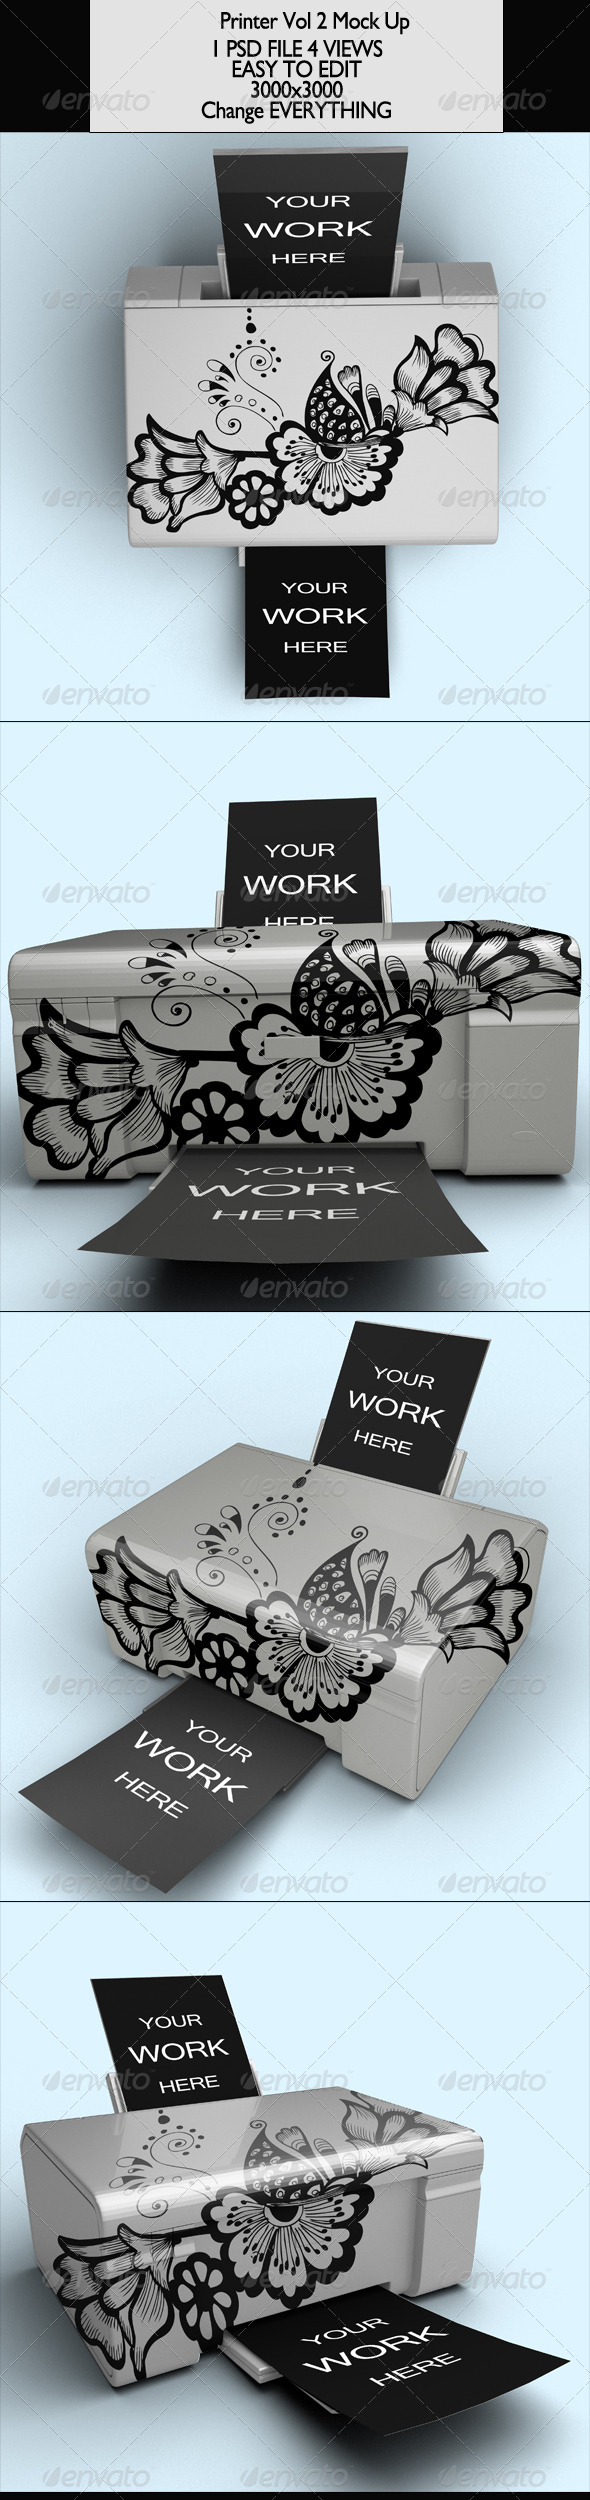 Printer Vol 2 Mock-Up - Product Mock-Ups Graphics